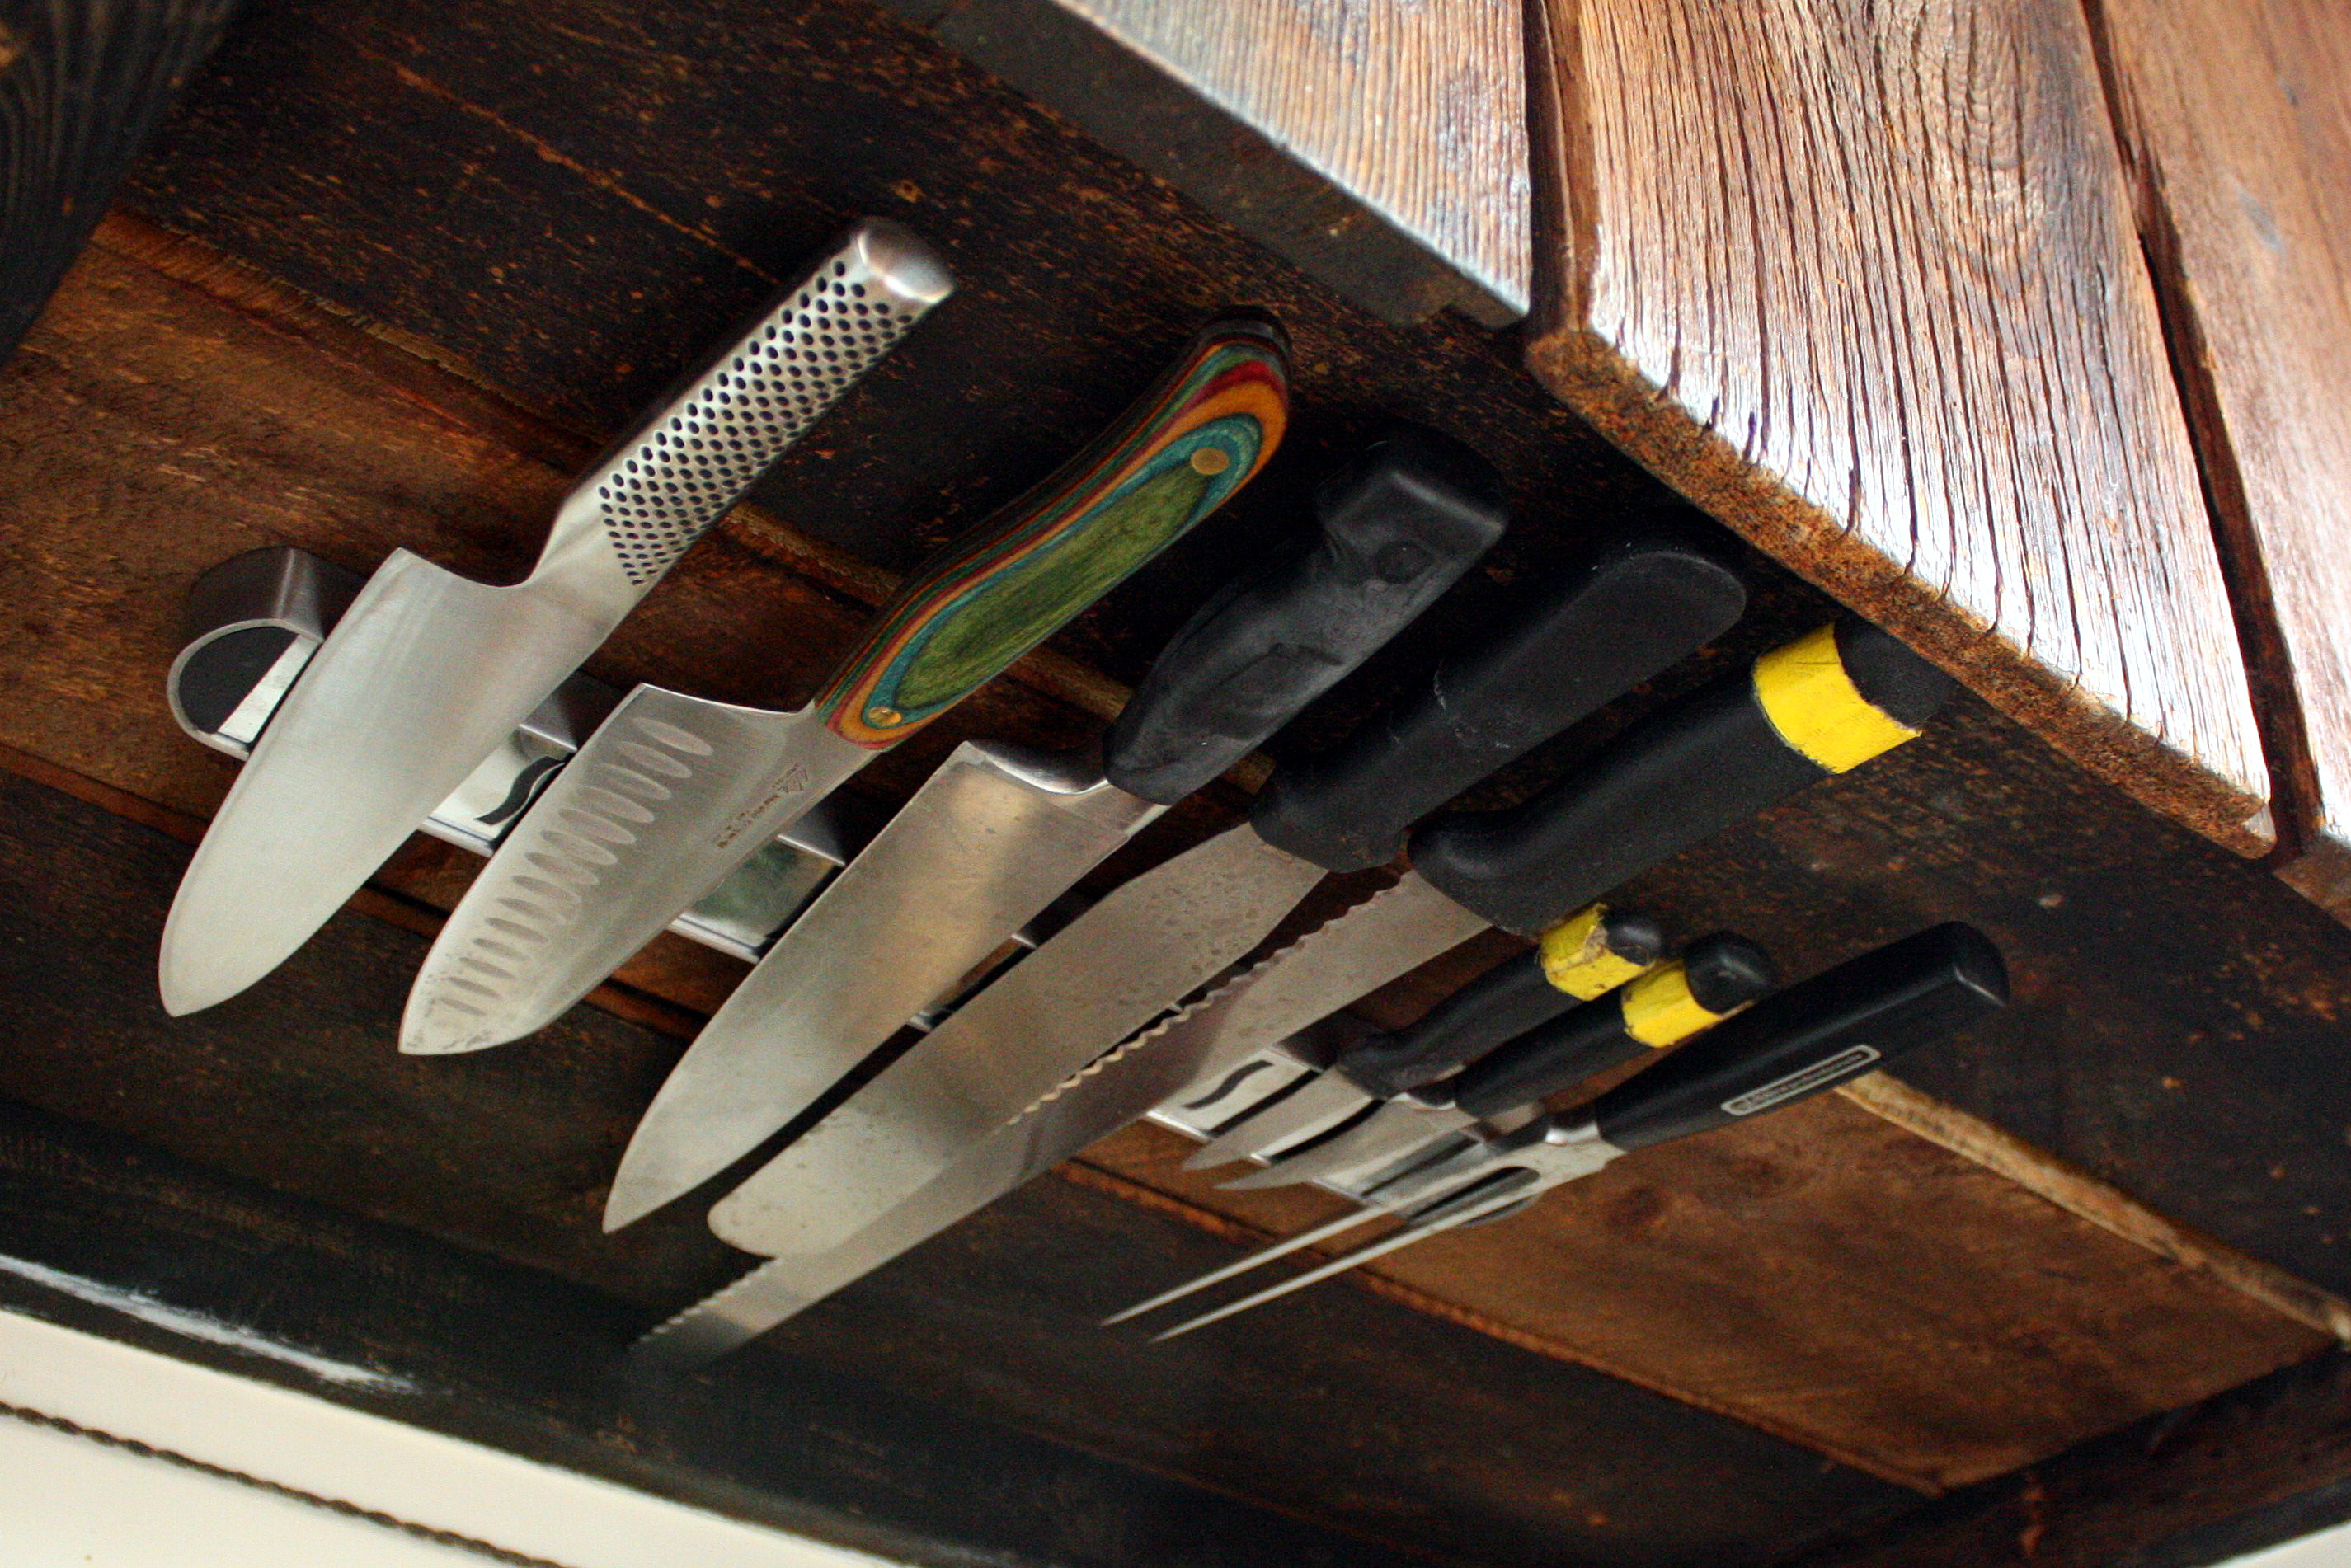 Space Saving Under Counter Knife Rack Idea